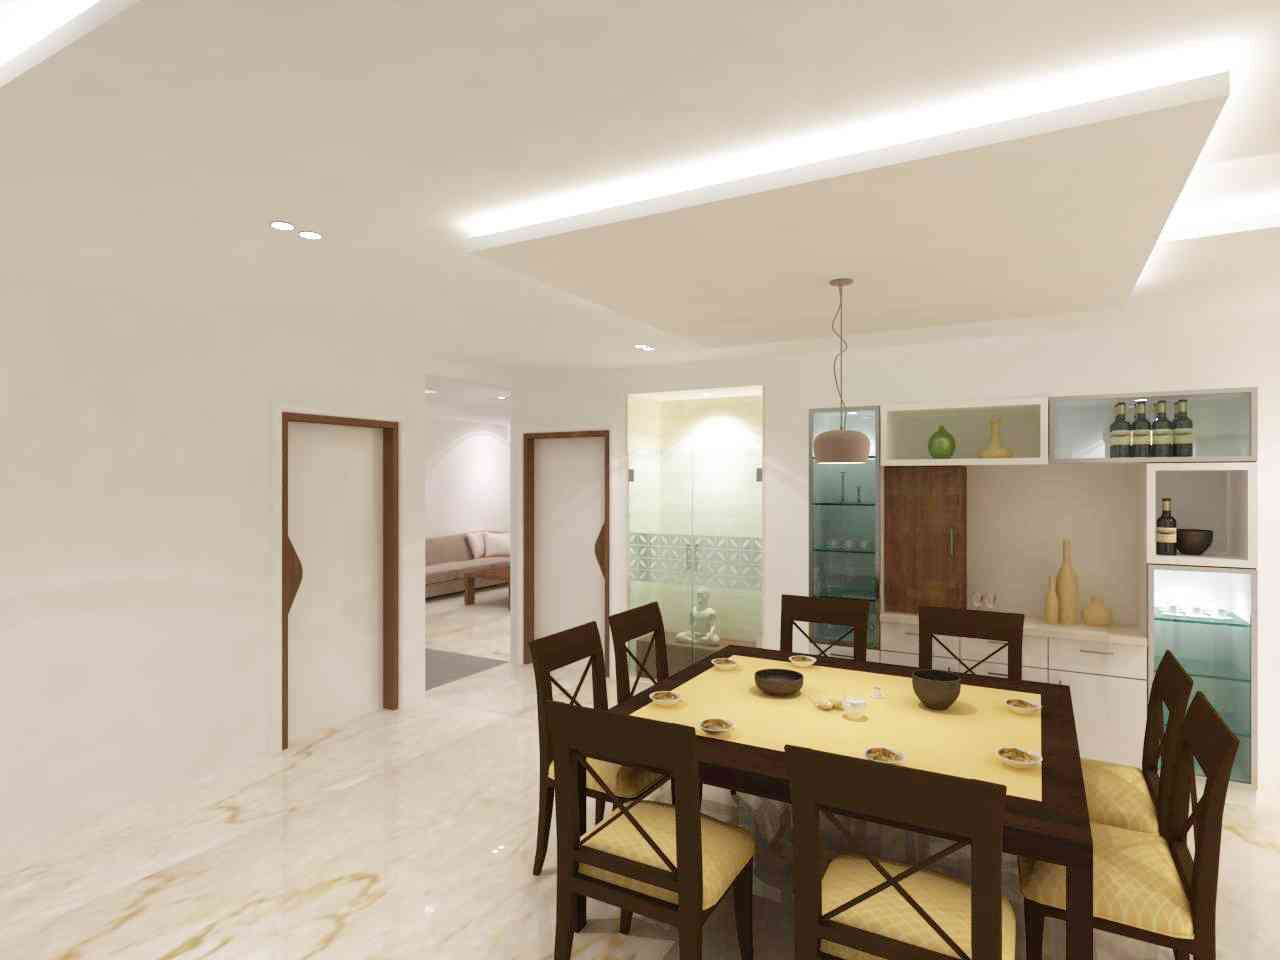 The Dining Area with Home Bar Design by Samanth gowda, Architect in ...